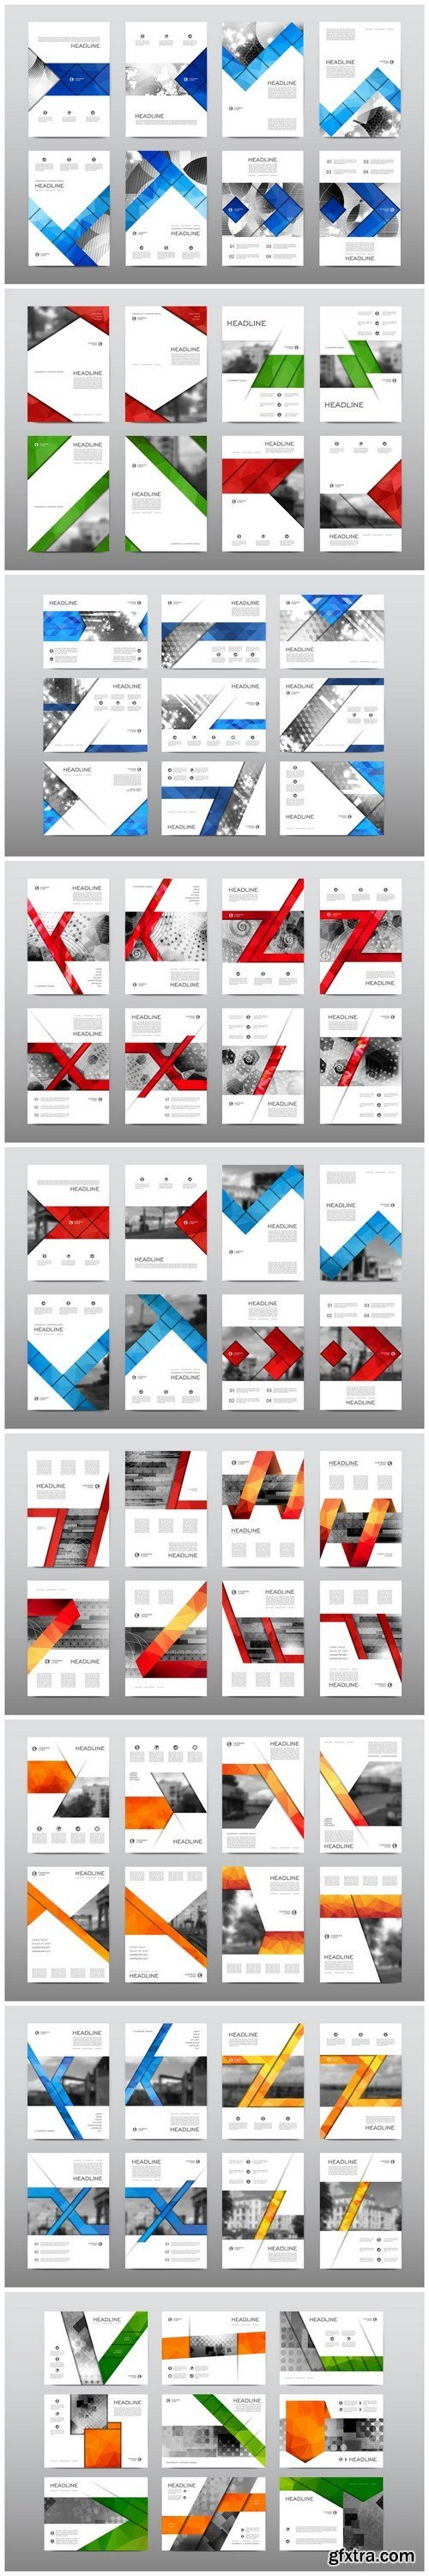 Business flyer and corporate template 2 - 9xEPS